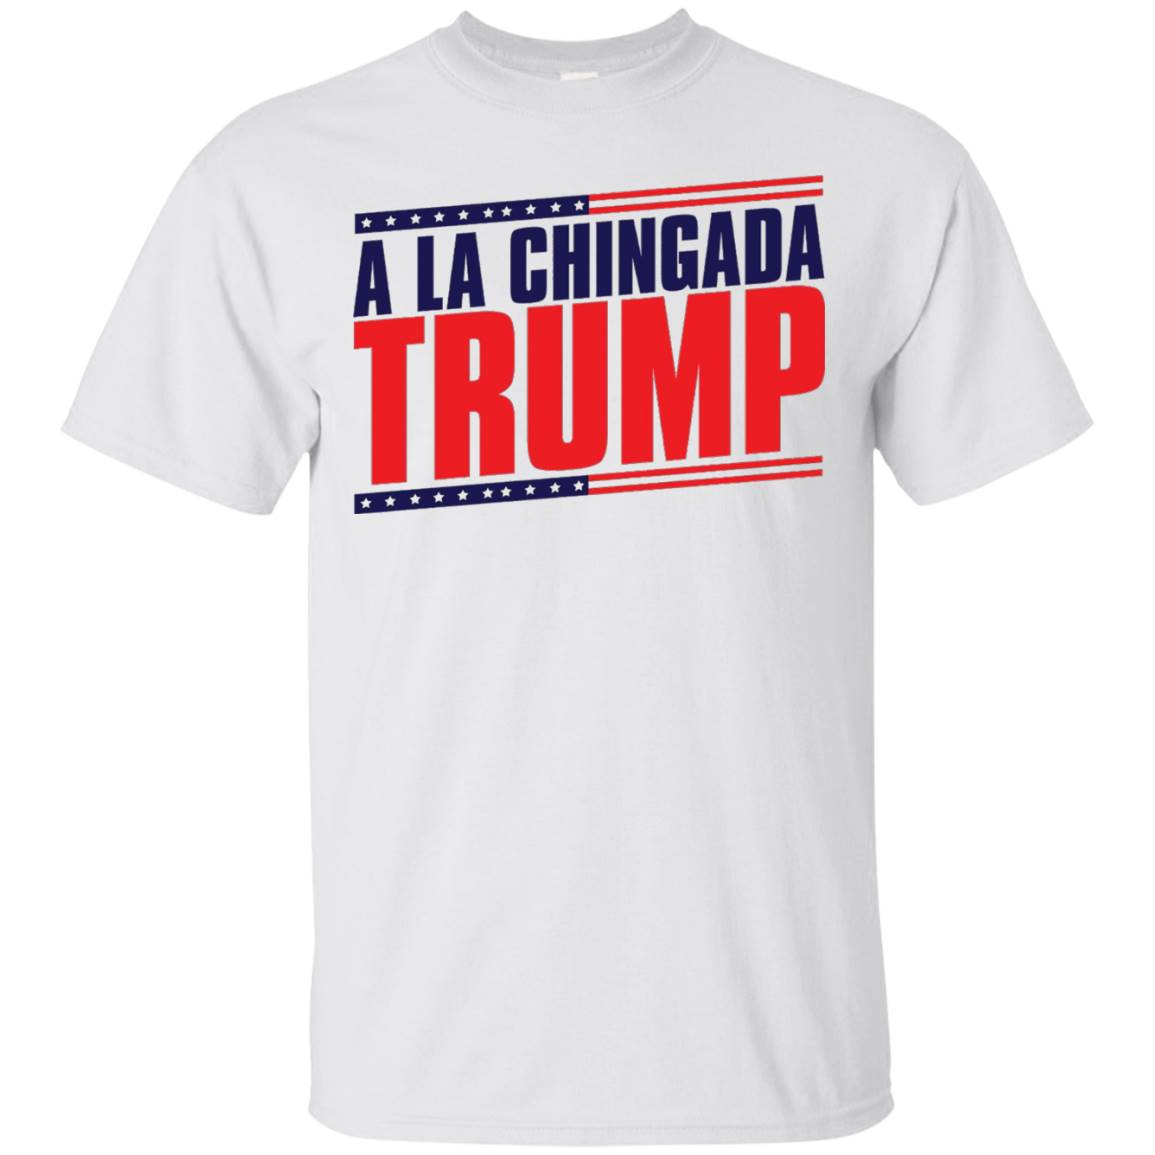 Fuck Trump T shirts A la chingada trump – T-Shirt